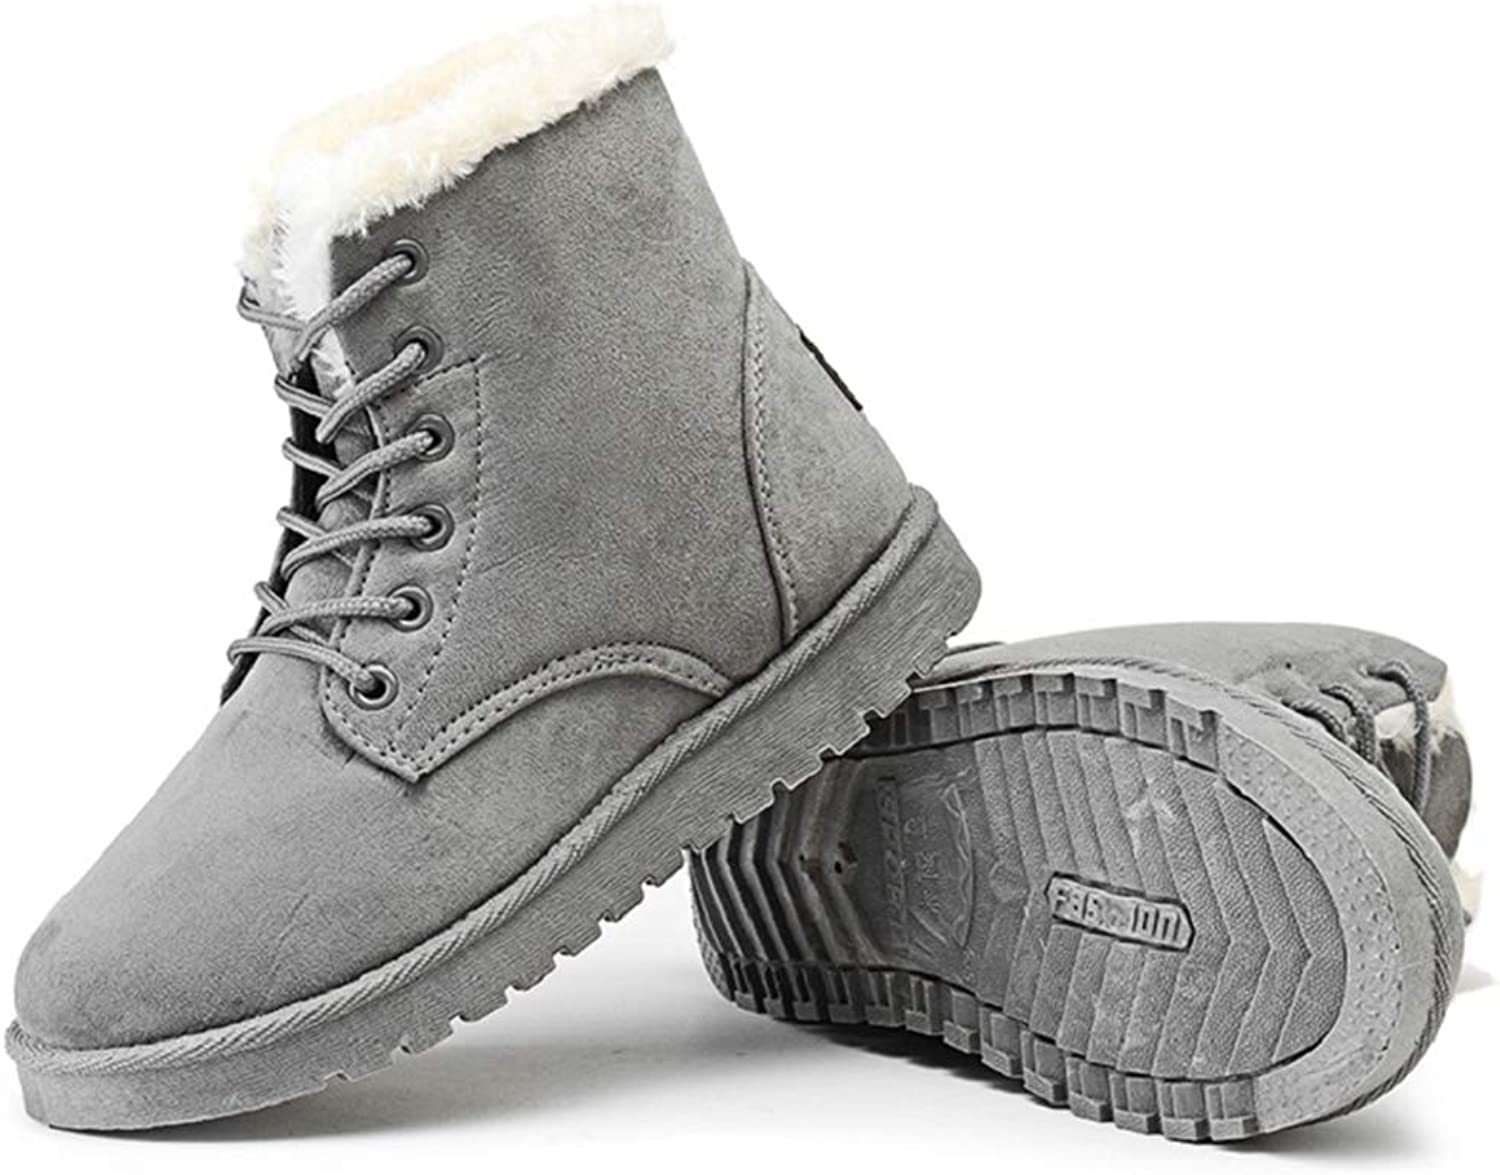 Hoxekle Woman Fashion Ankle Boots Lace Up Round Toe Plush Lining Winter Warm Flat Antislip Female Ourdoor Snow shoes